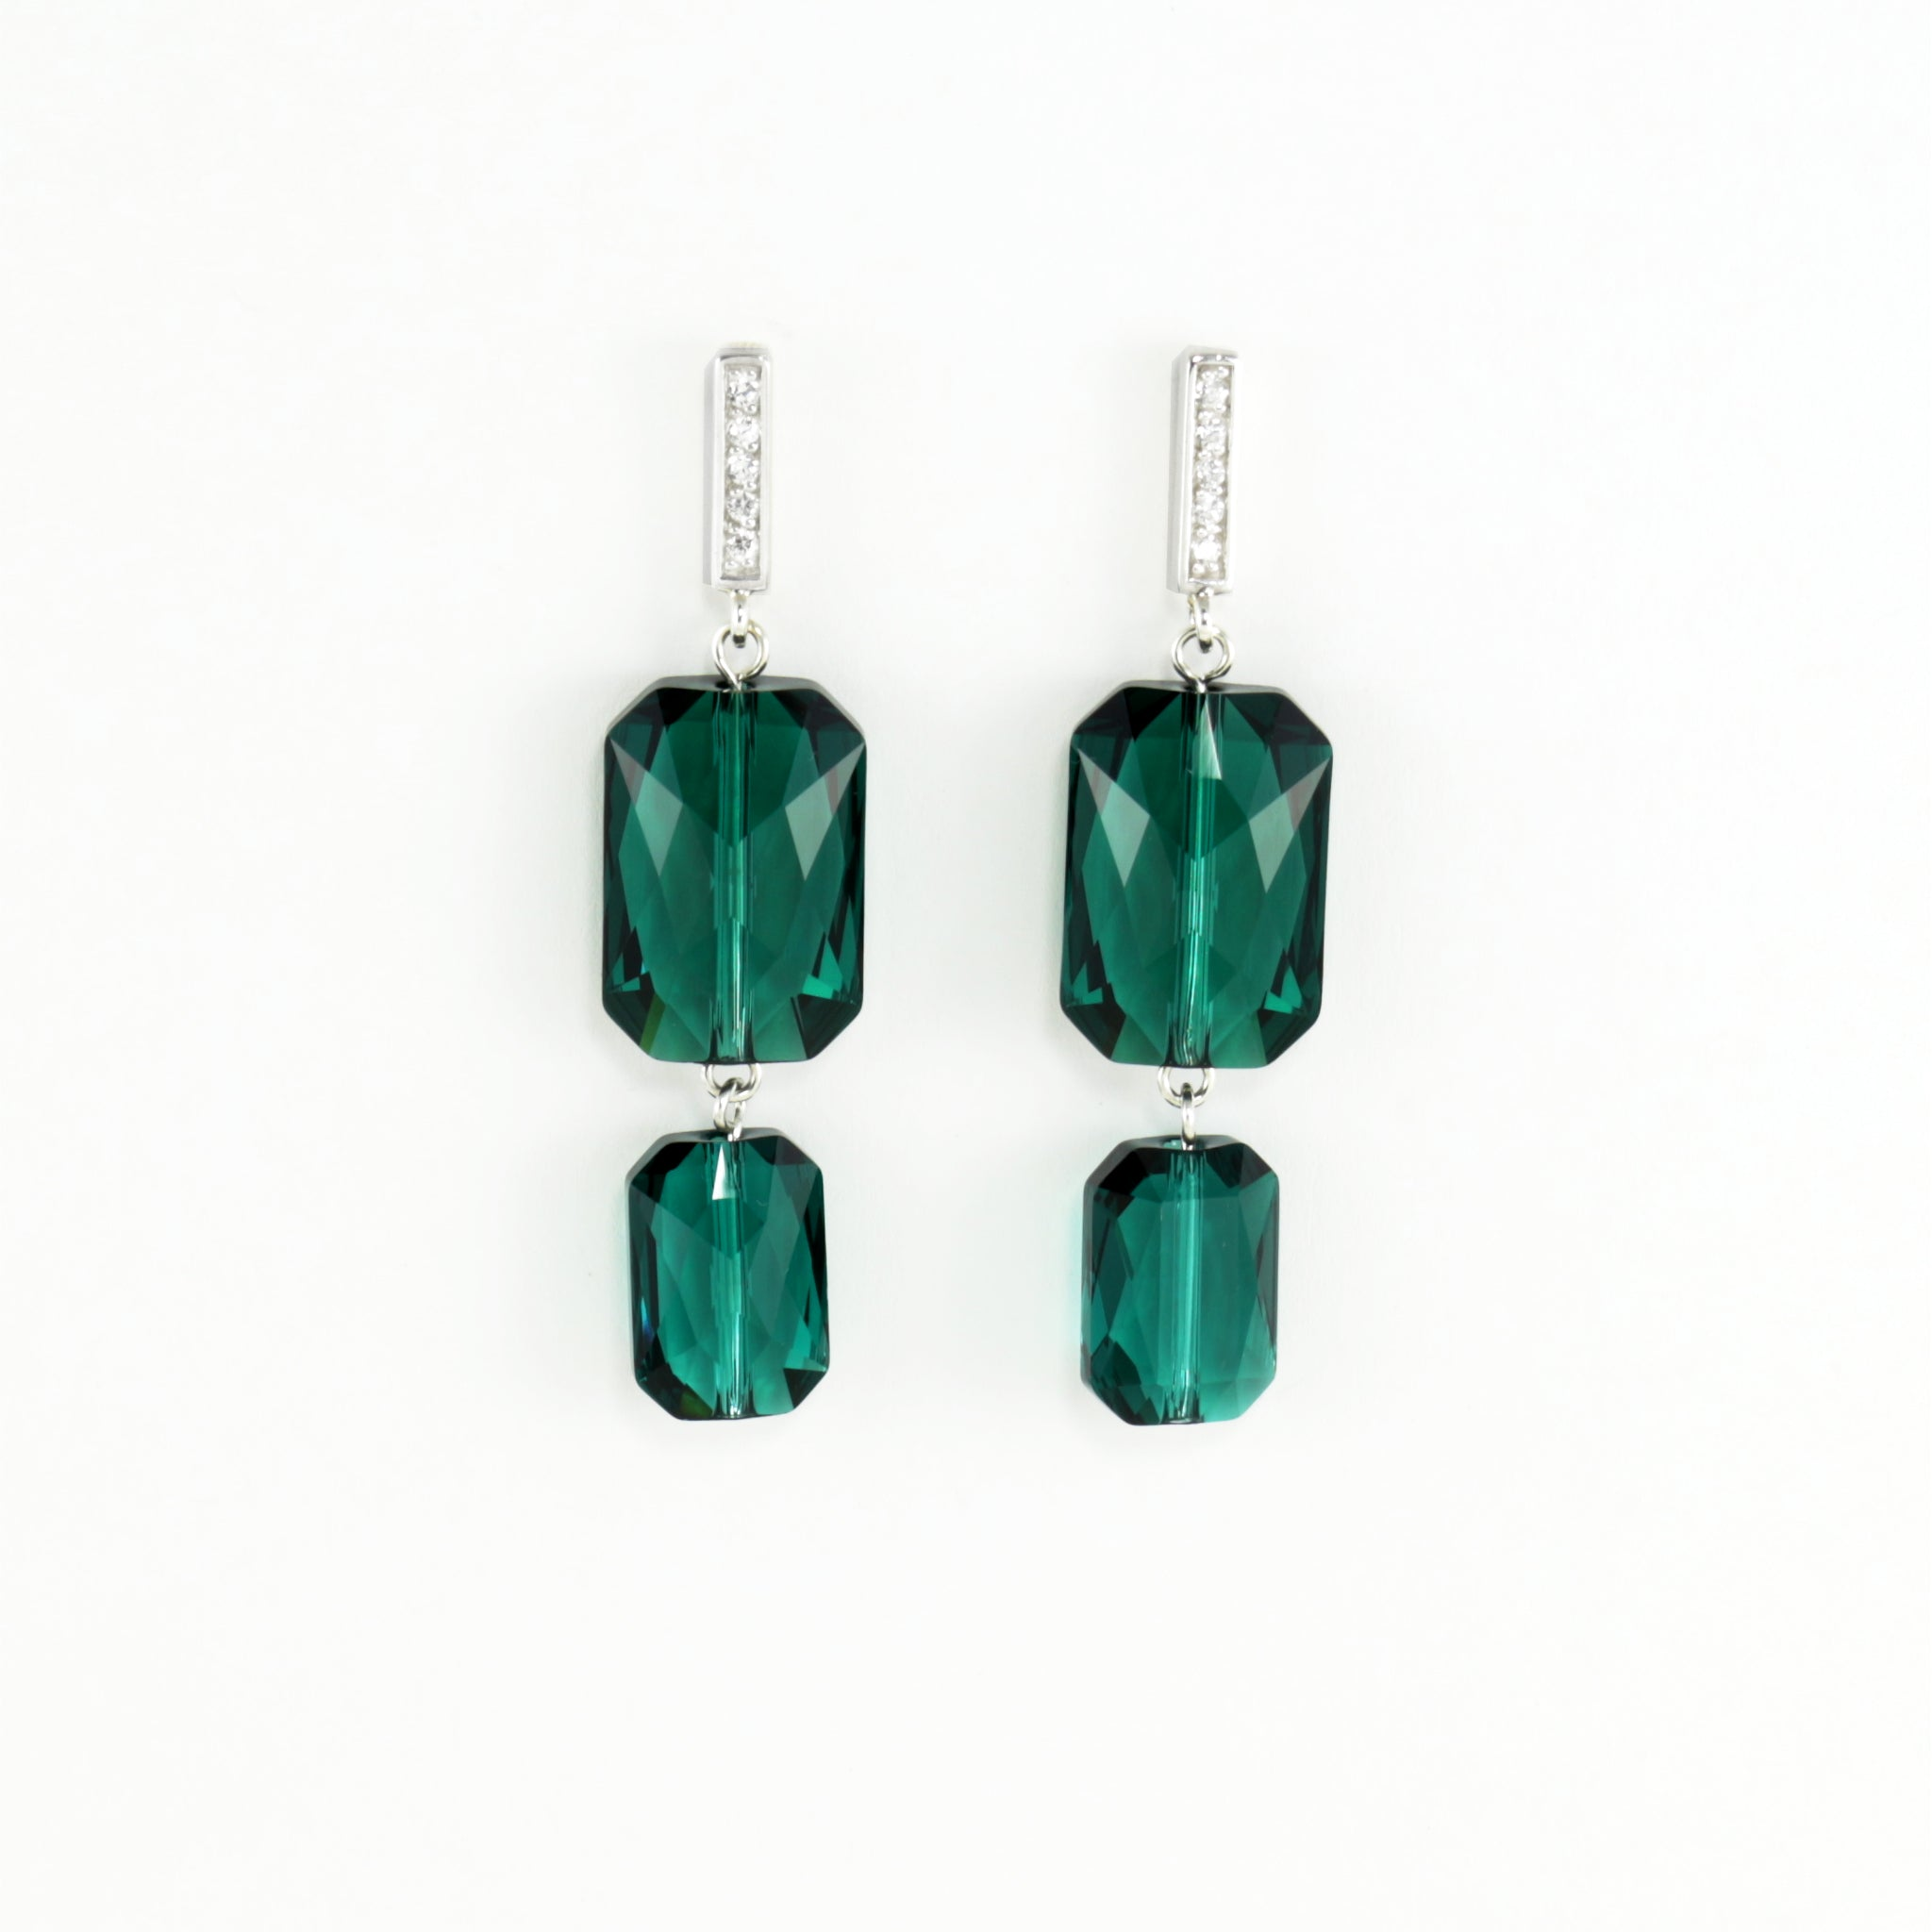 Plaza Earrings in Emerald